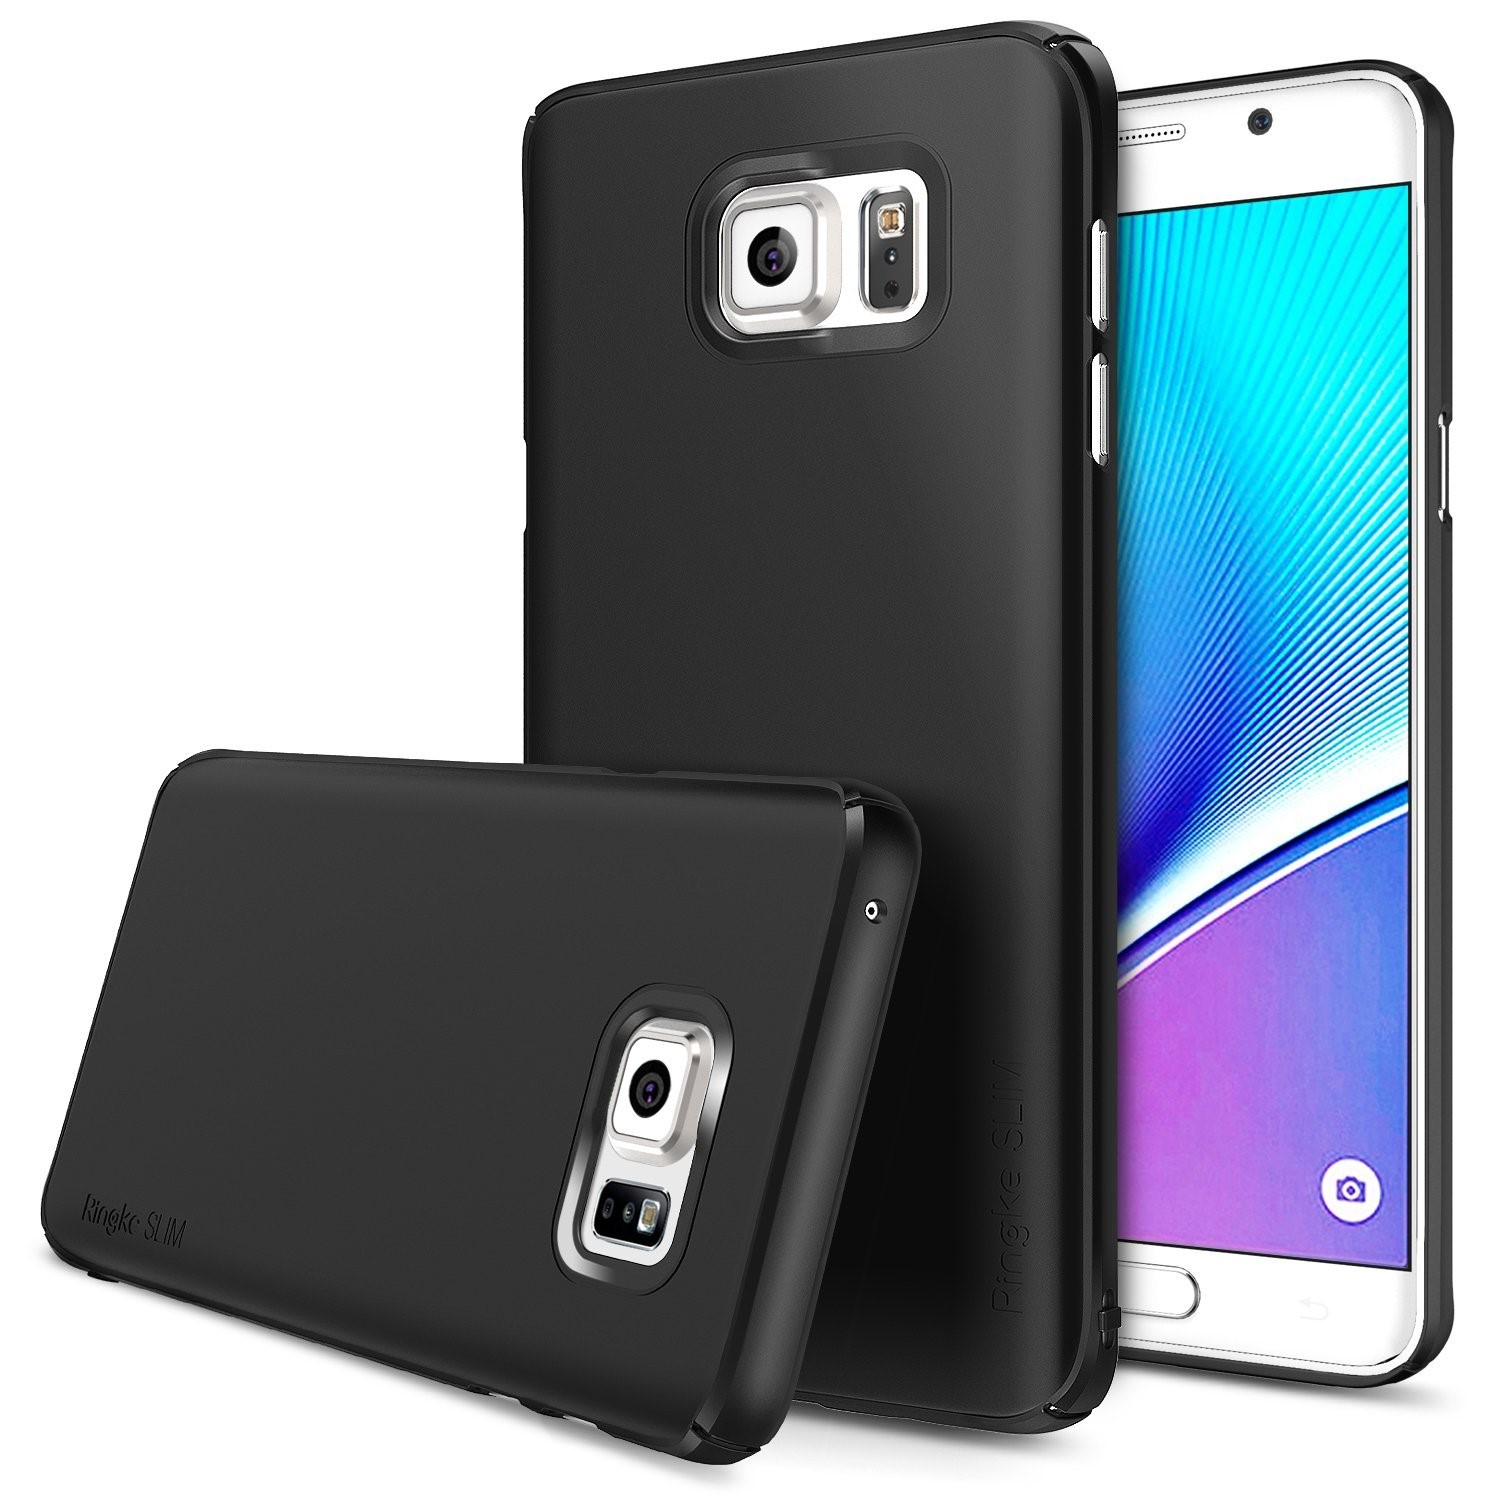 Galaxy Note 5 Case, Ringke [SLIM] Snug-Fit Slender [Tailored Cutouts] Lightweight & Thin Scratch Resistant Dual Coating PC Hard Cover For Samsung Galaxy Note 5